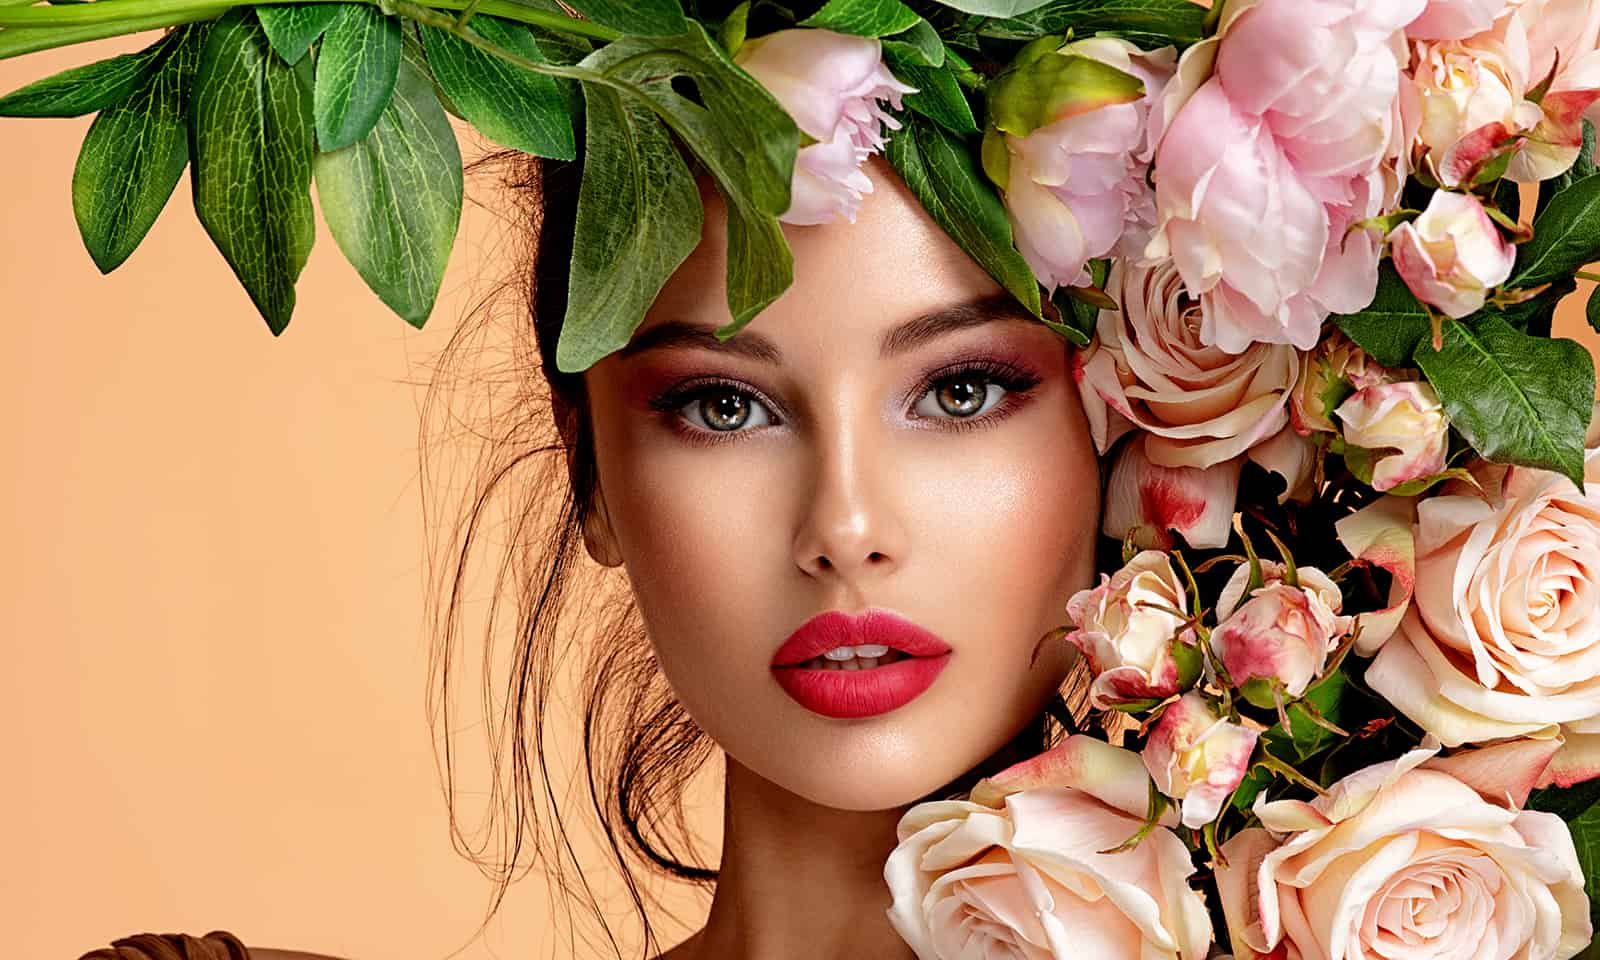 how-to-do-plant-based-skincare-right-main-image-girl-with-flowers-and-plants-around-head